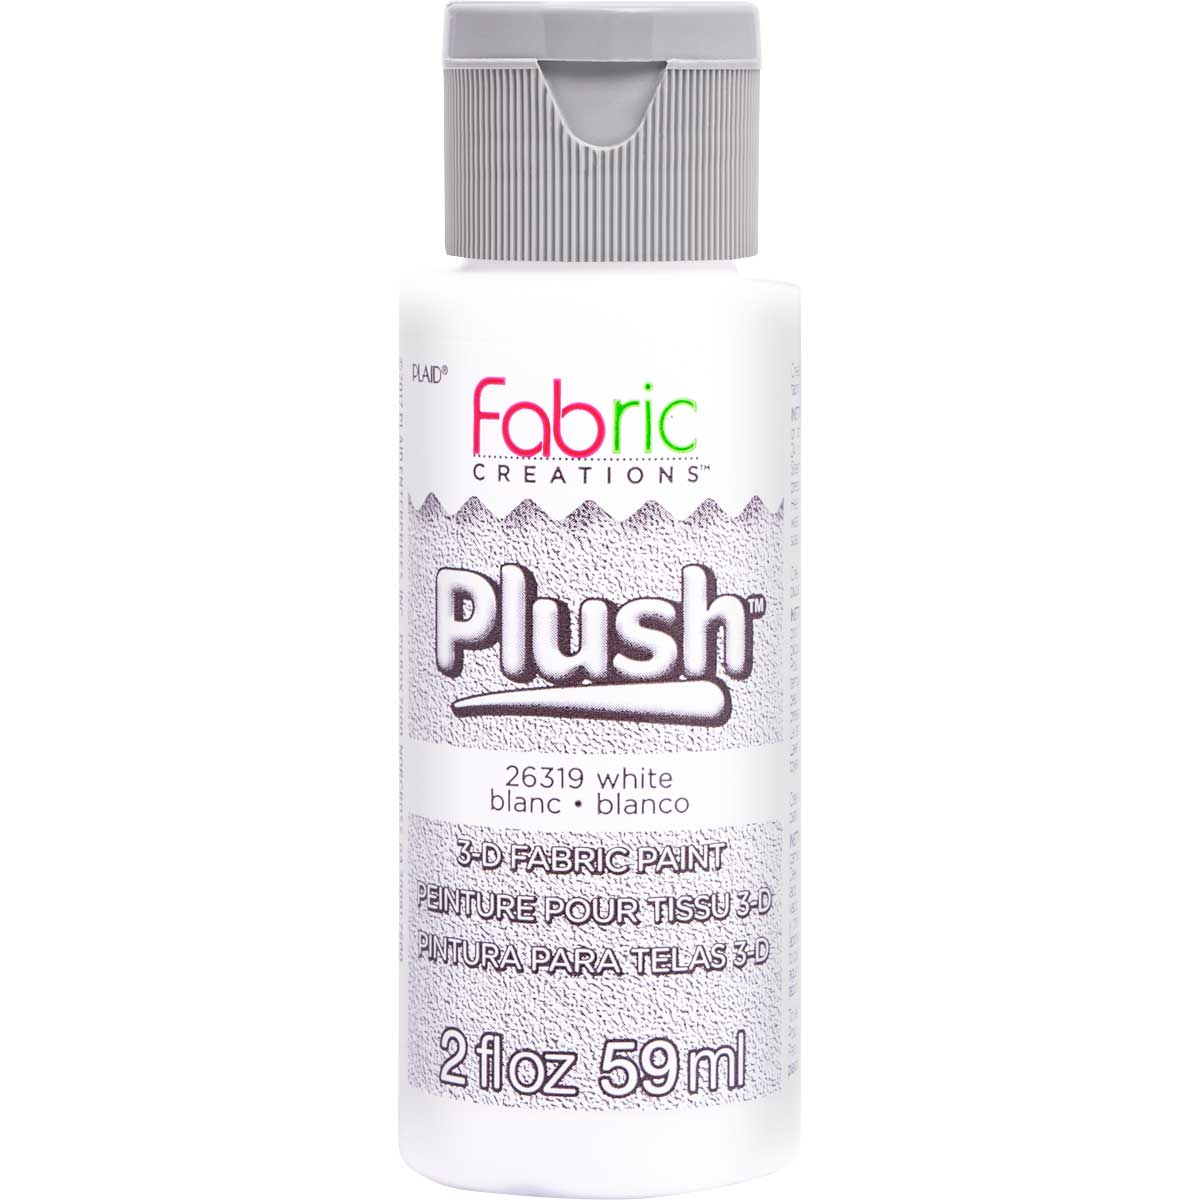 Fabric Creations™ Plush™ 3-D Fabric Paints - White, 2 oz.